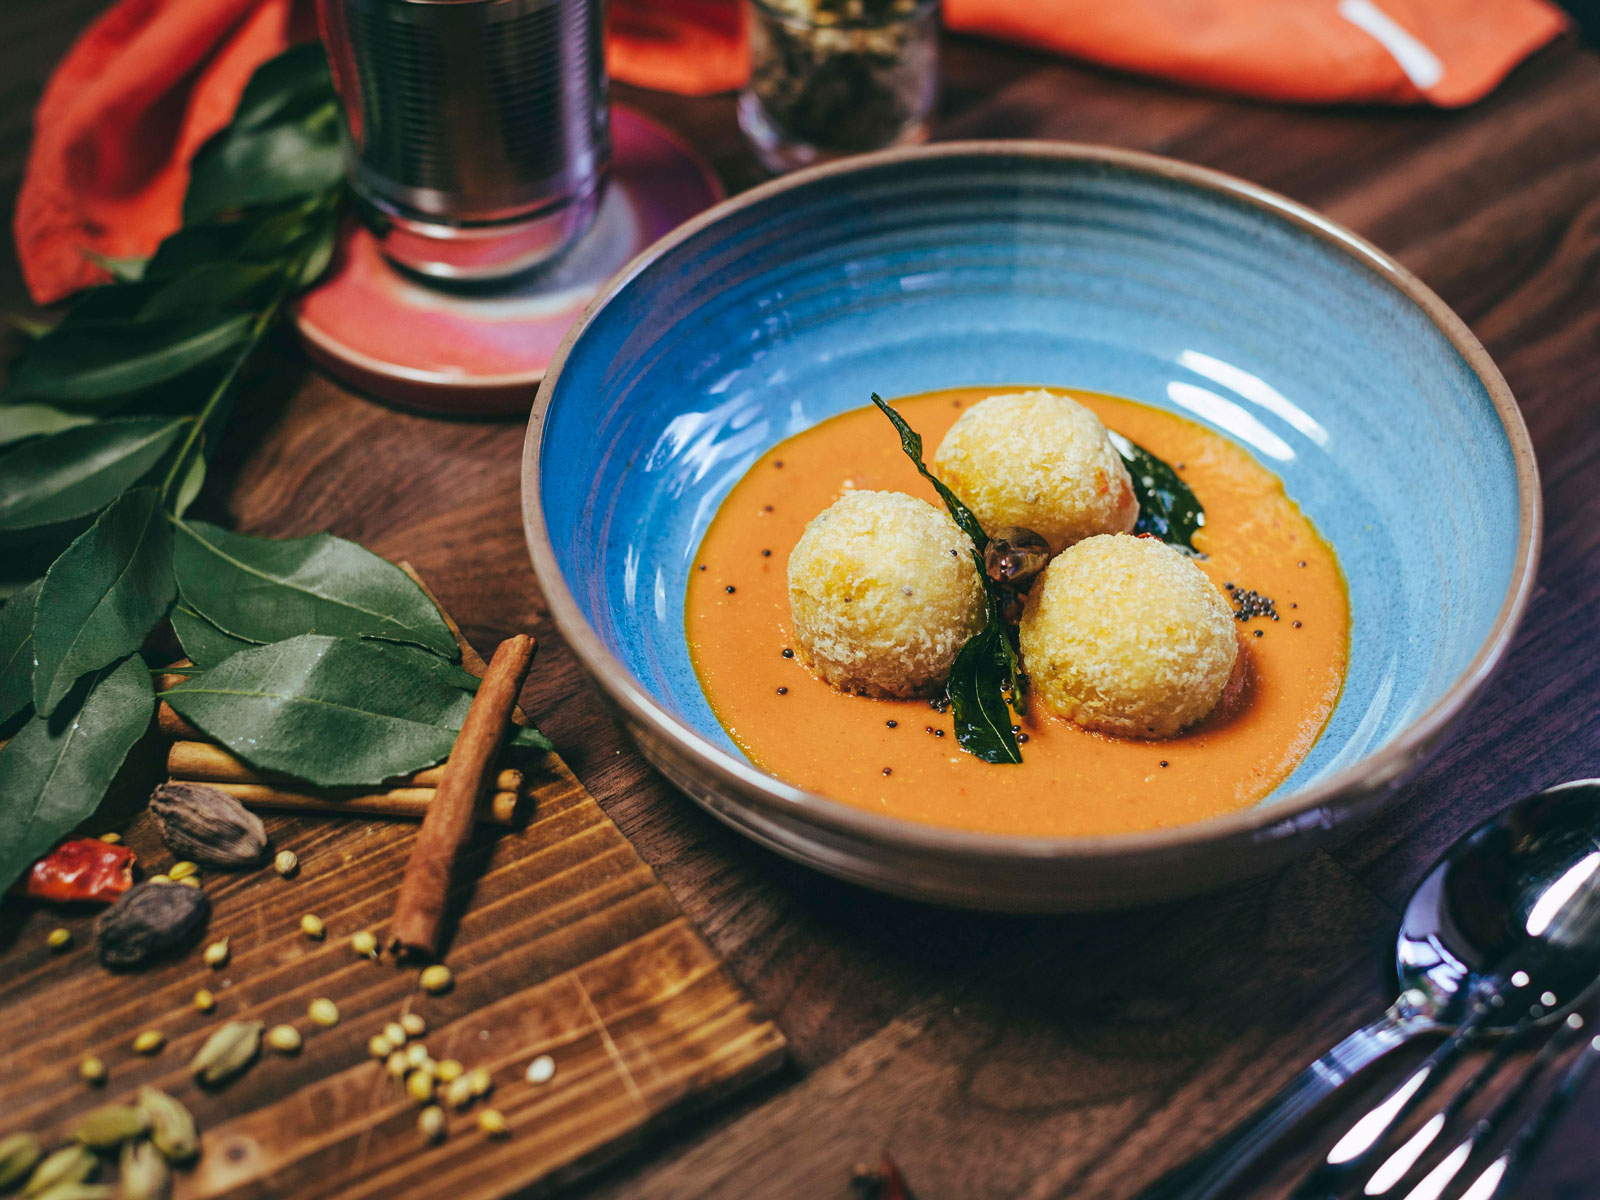 South Indian Food Is Having a Major Moment in America